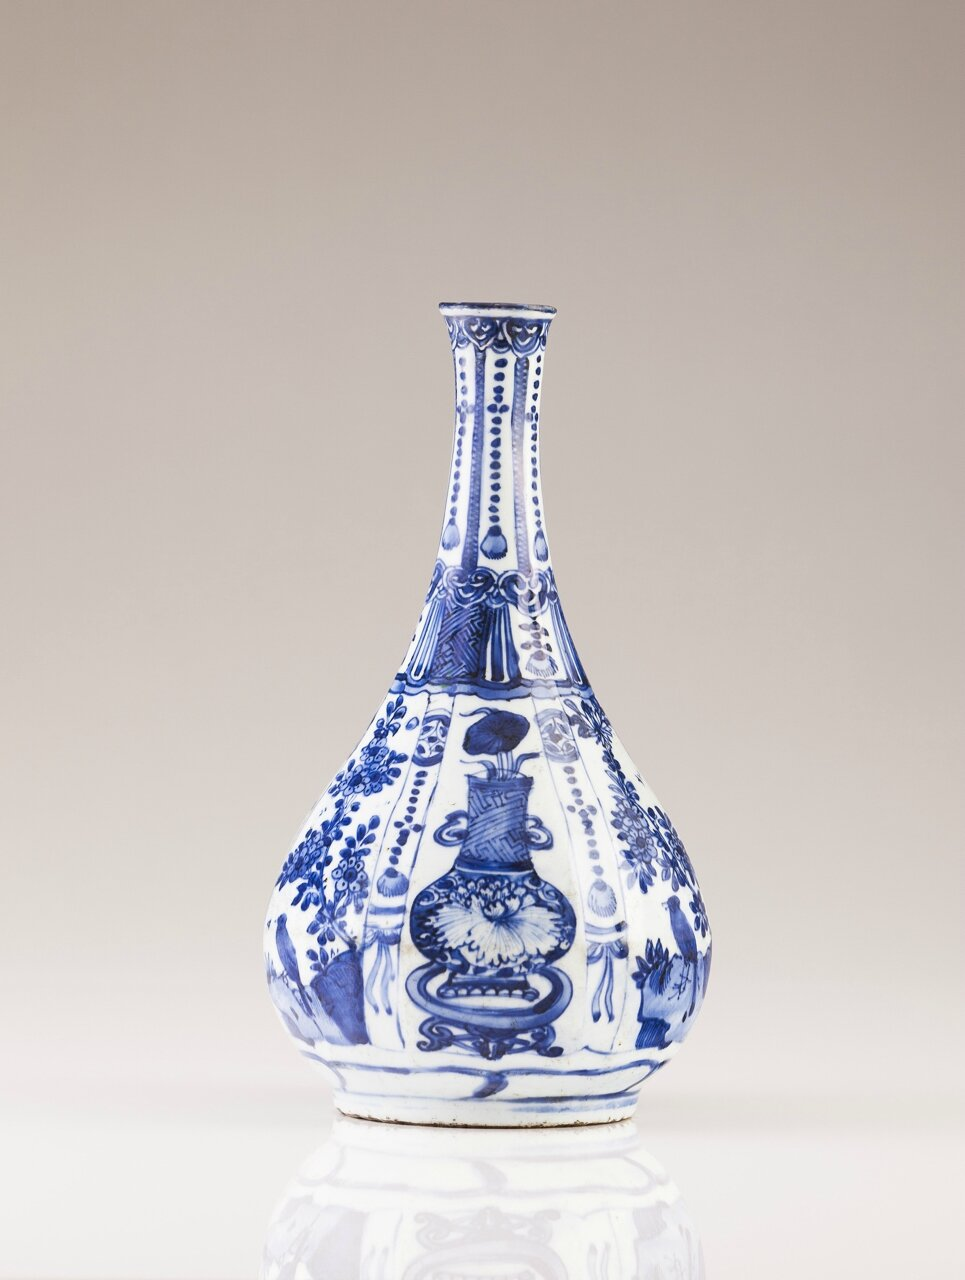 A Blue and white Chinese porcelain bottle, Ming Dynasty, Wanli Period (1573-1620)